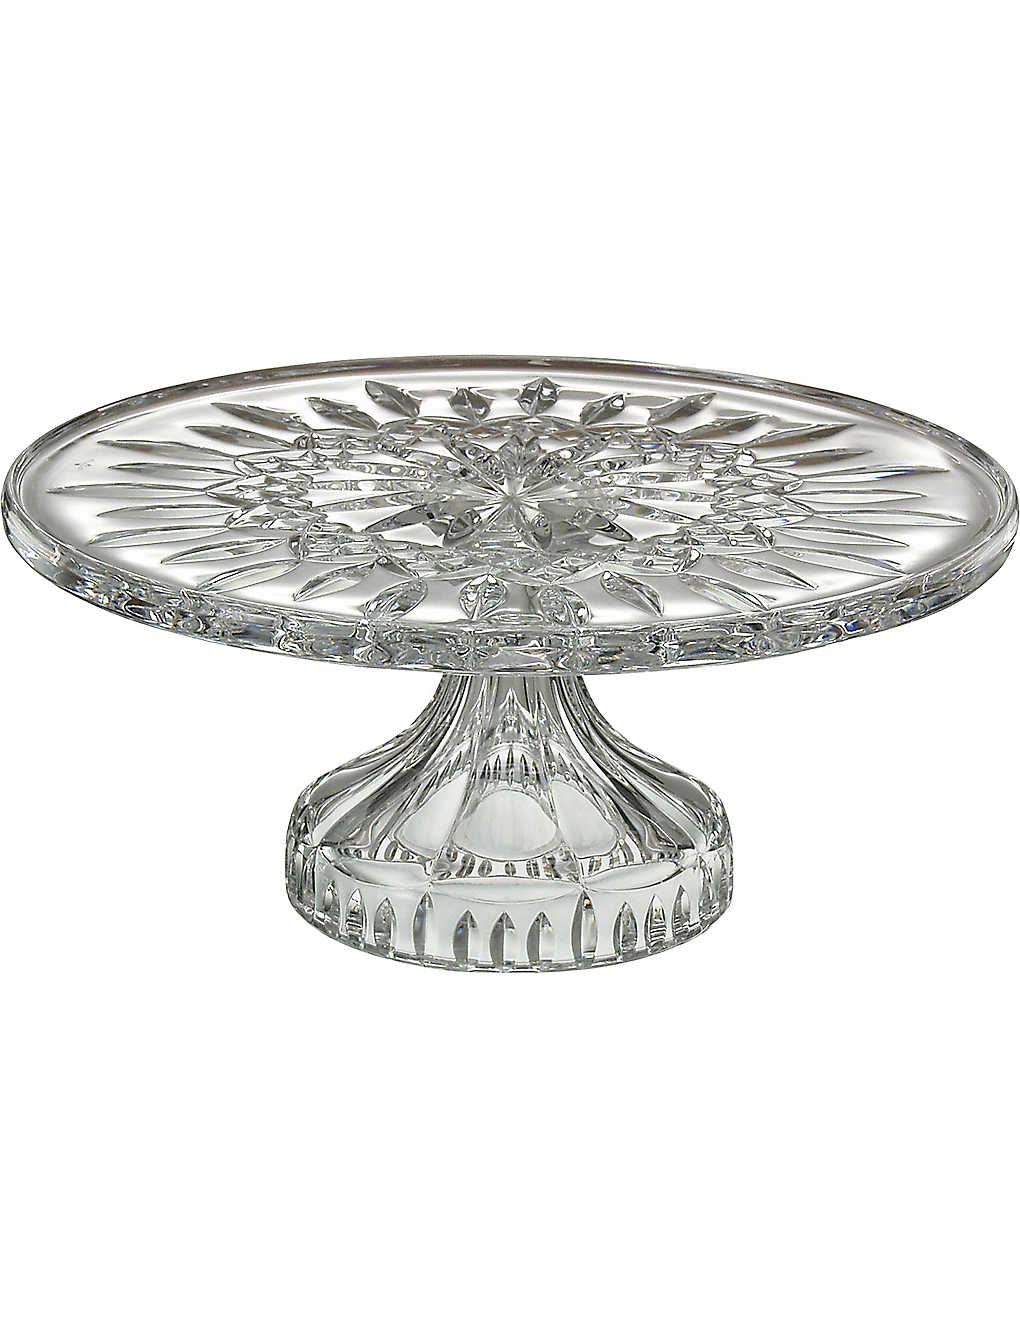 WATERFORD: Lismore crystal cake plate